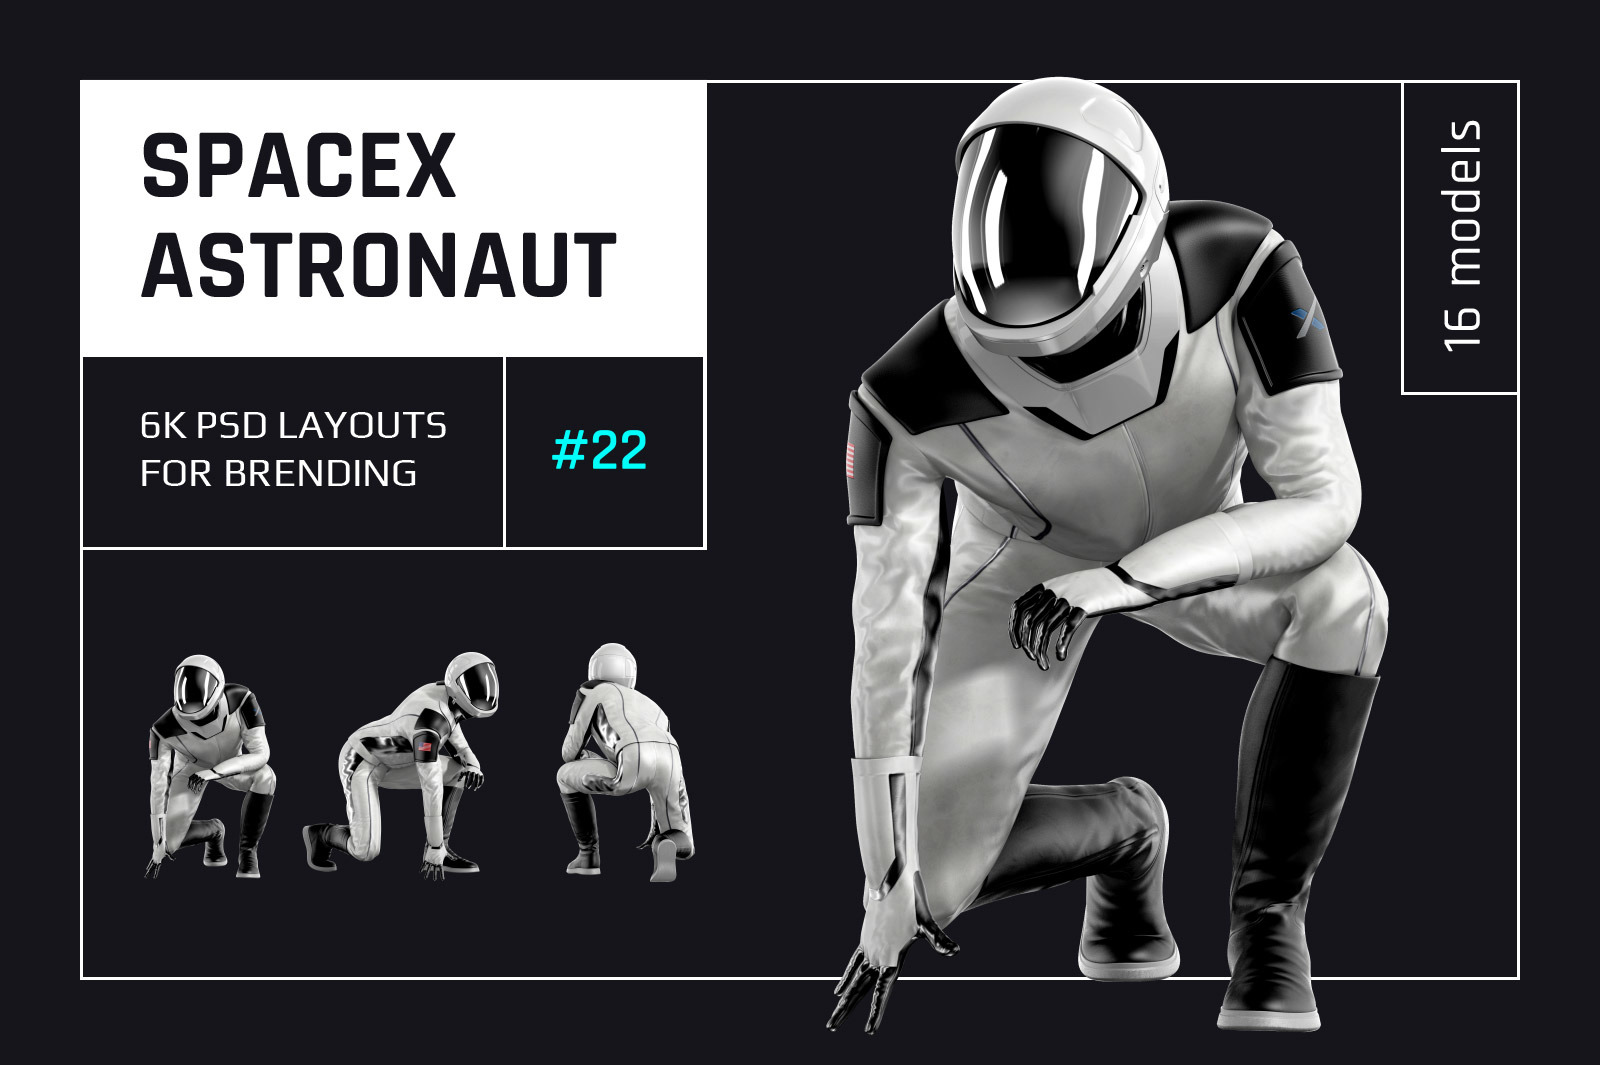 PSD Mockup 3D model SpaceX Astronaut #22